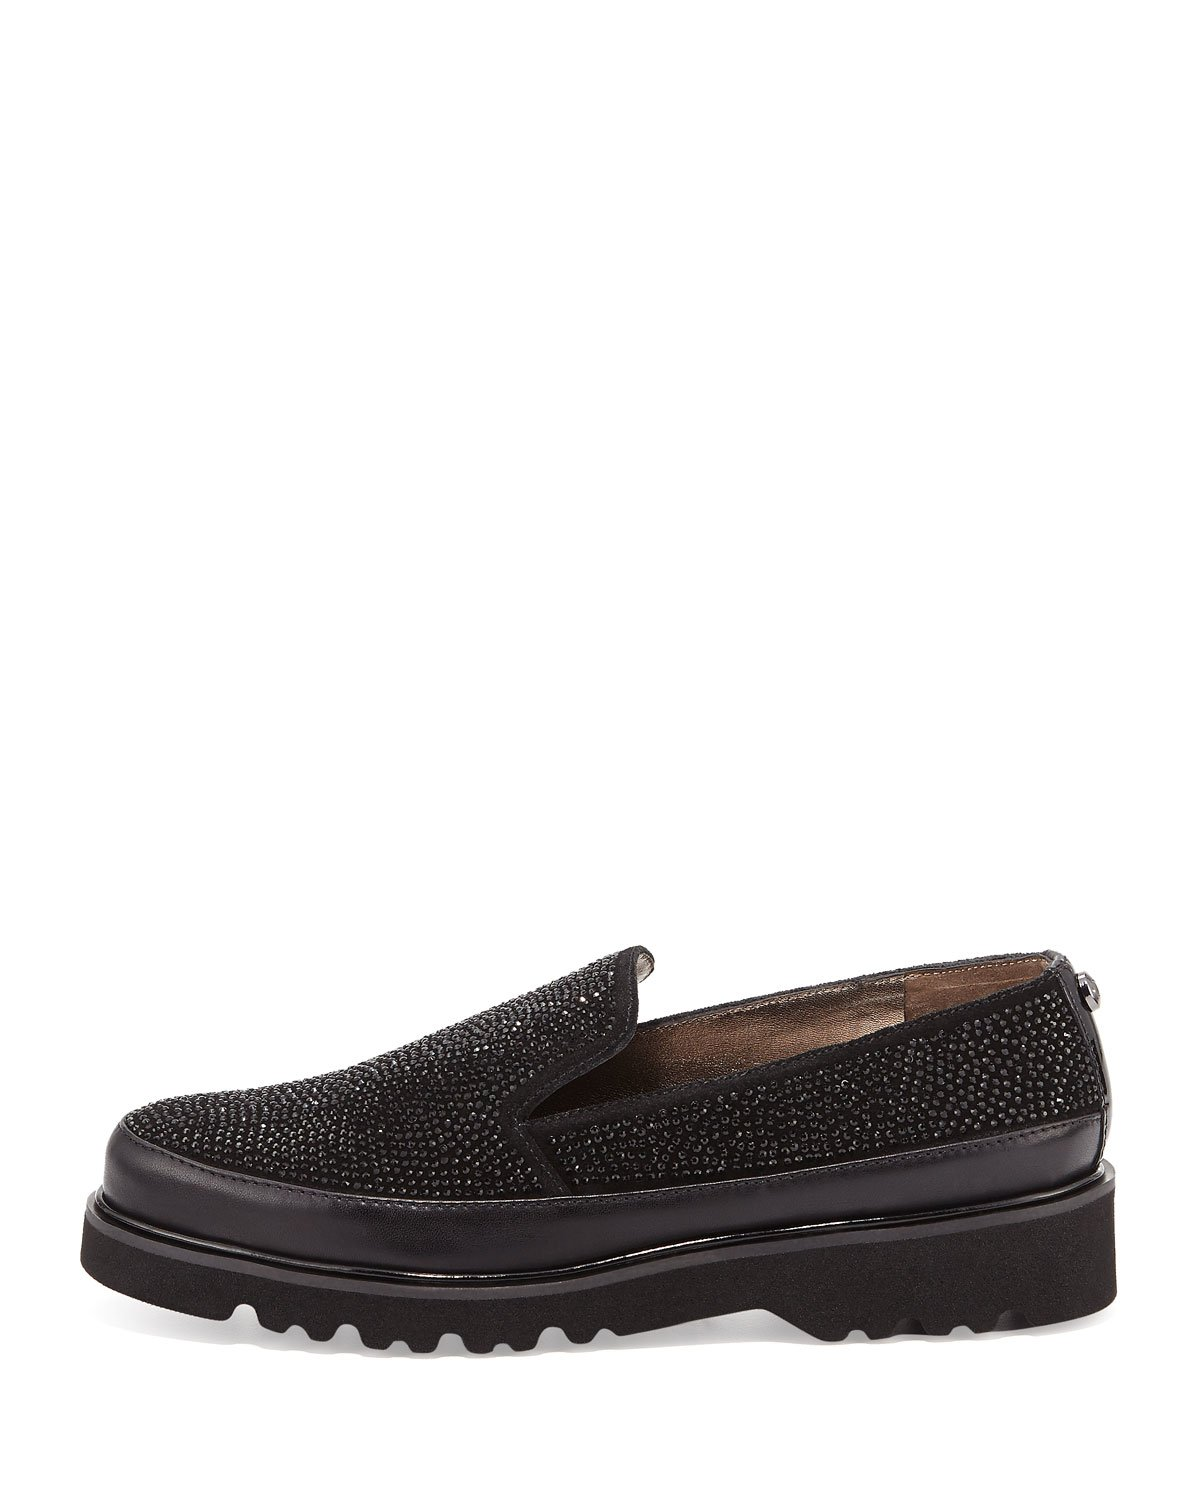 Donald J Pliner Womens Coco Leather Low Top Slip On Fashion, Black, Size 6.0